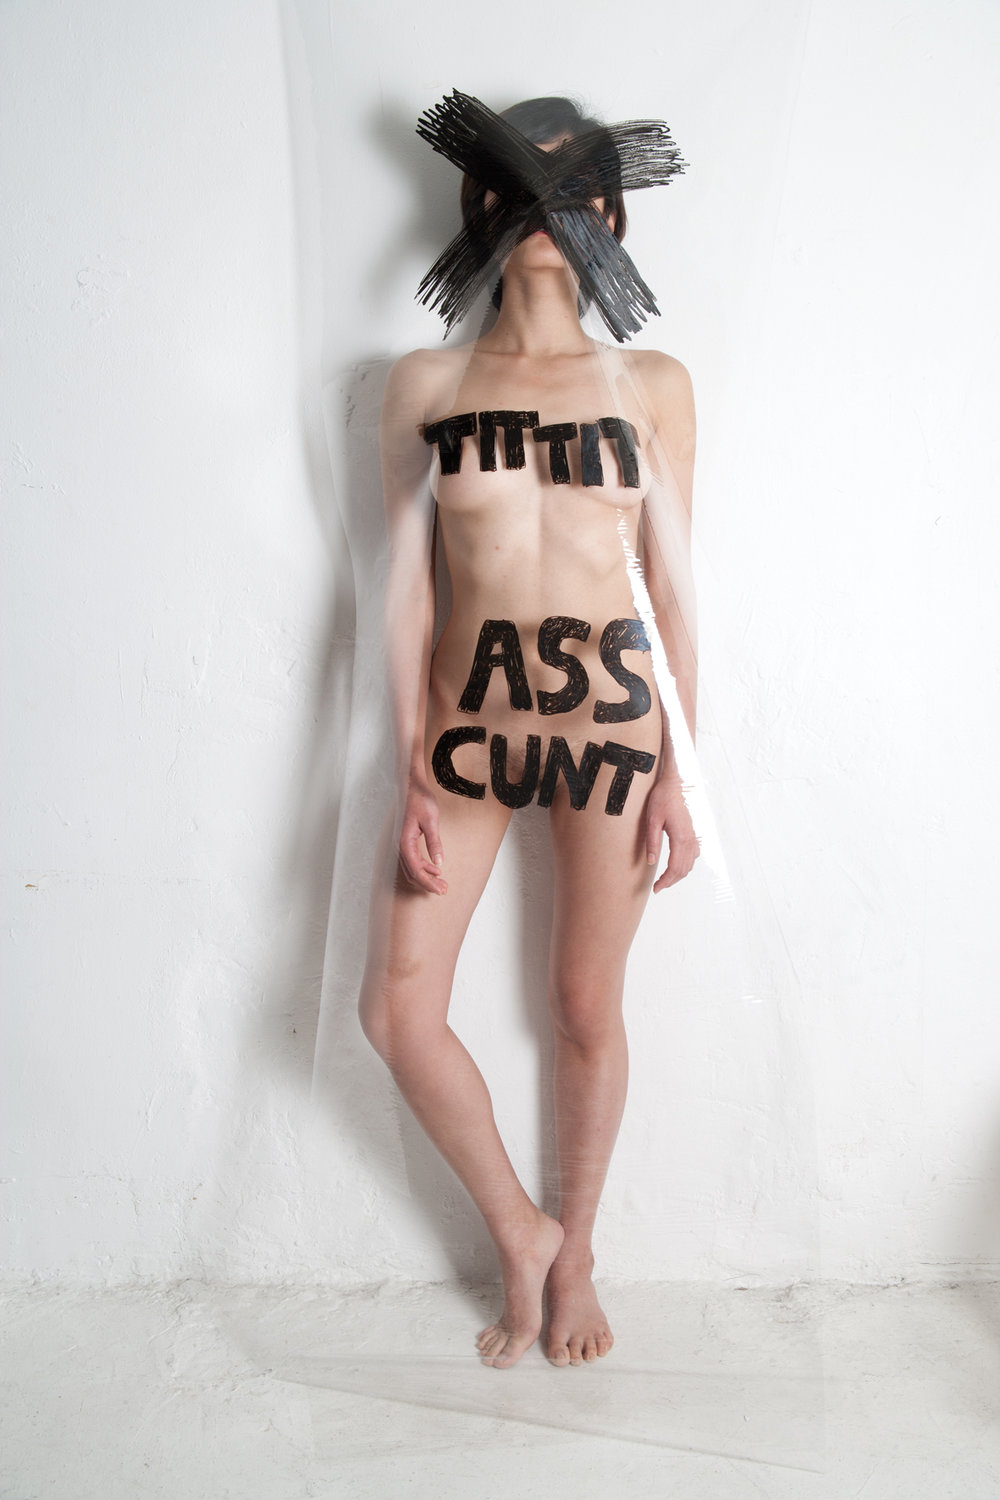 the big nude, cross, tit tit, ass, cunt  , 2016, from the series: connasse, photograph, sizes vary.